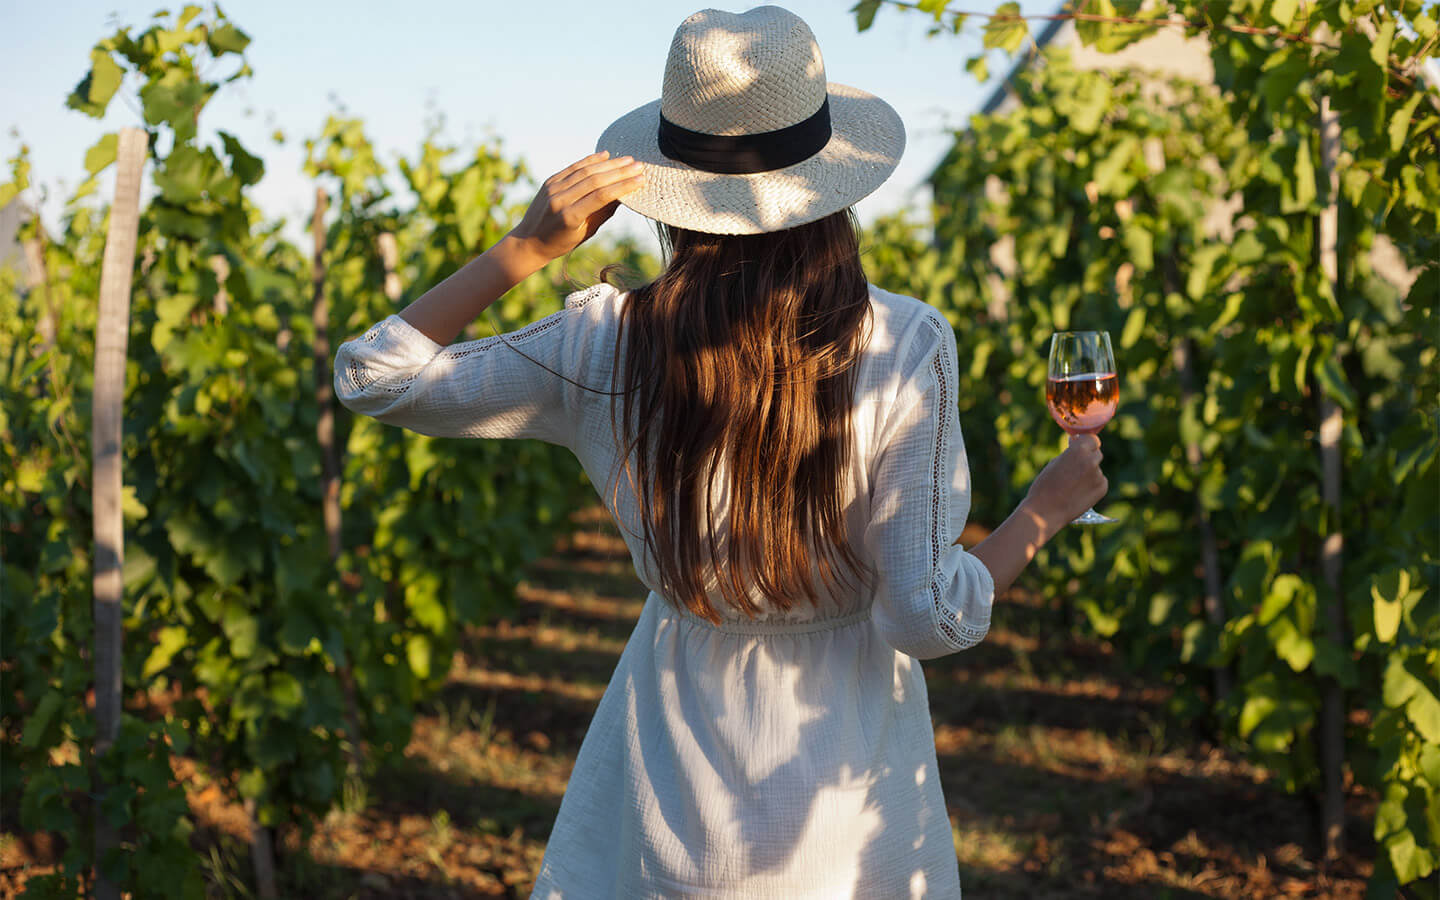 woman holding a glass of wine in a field